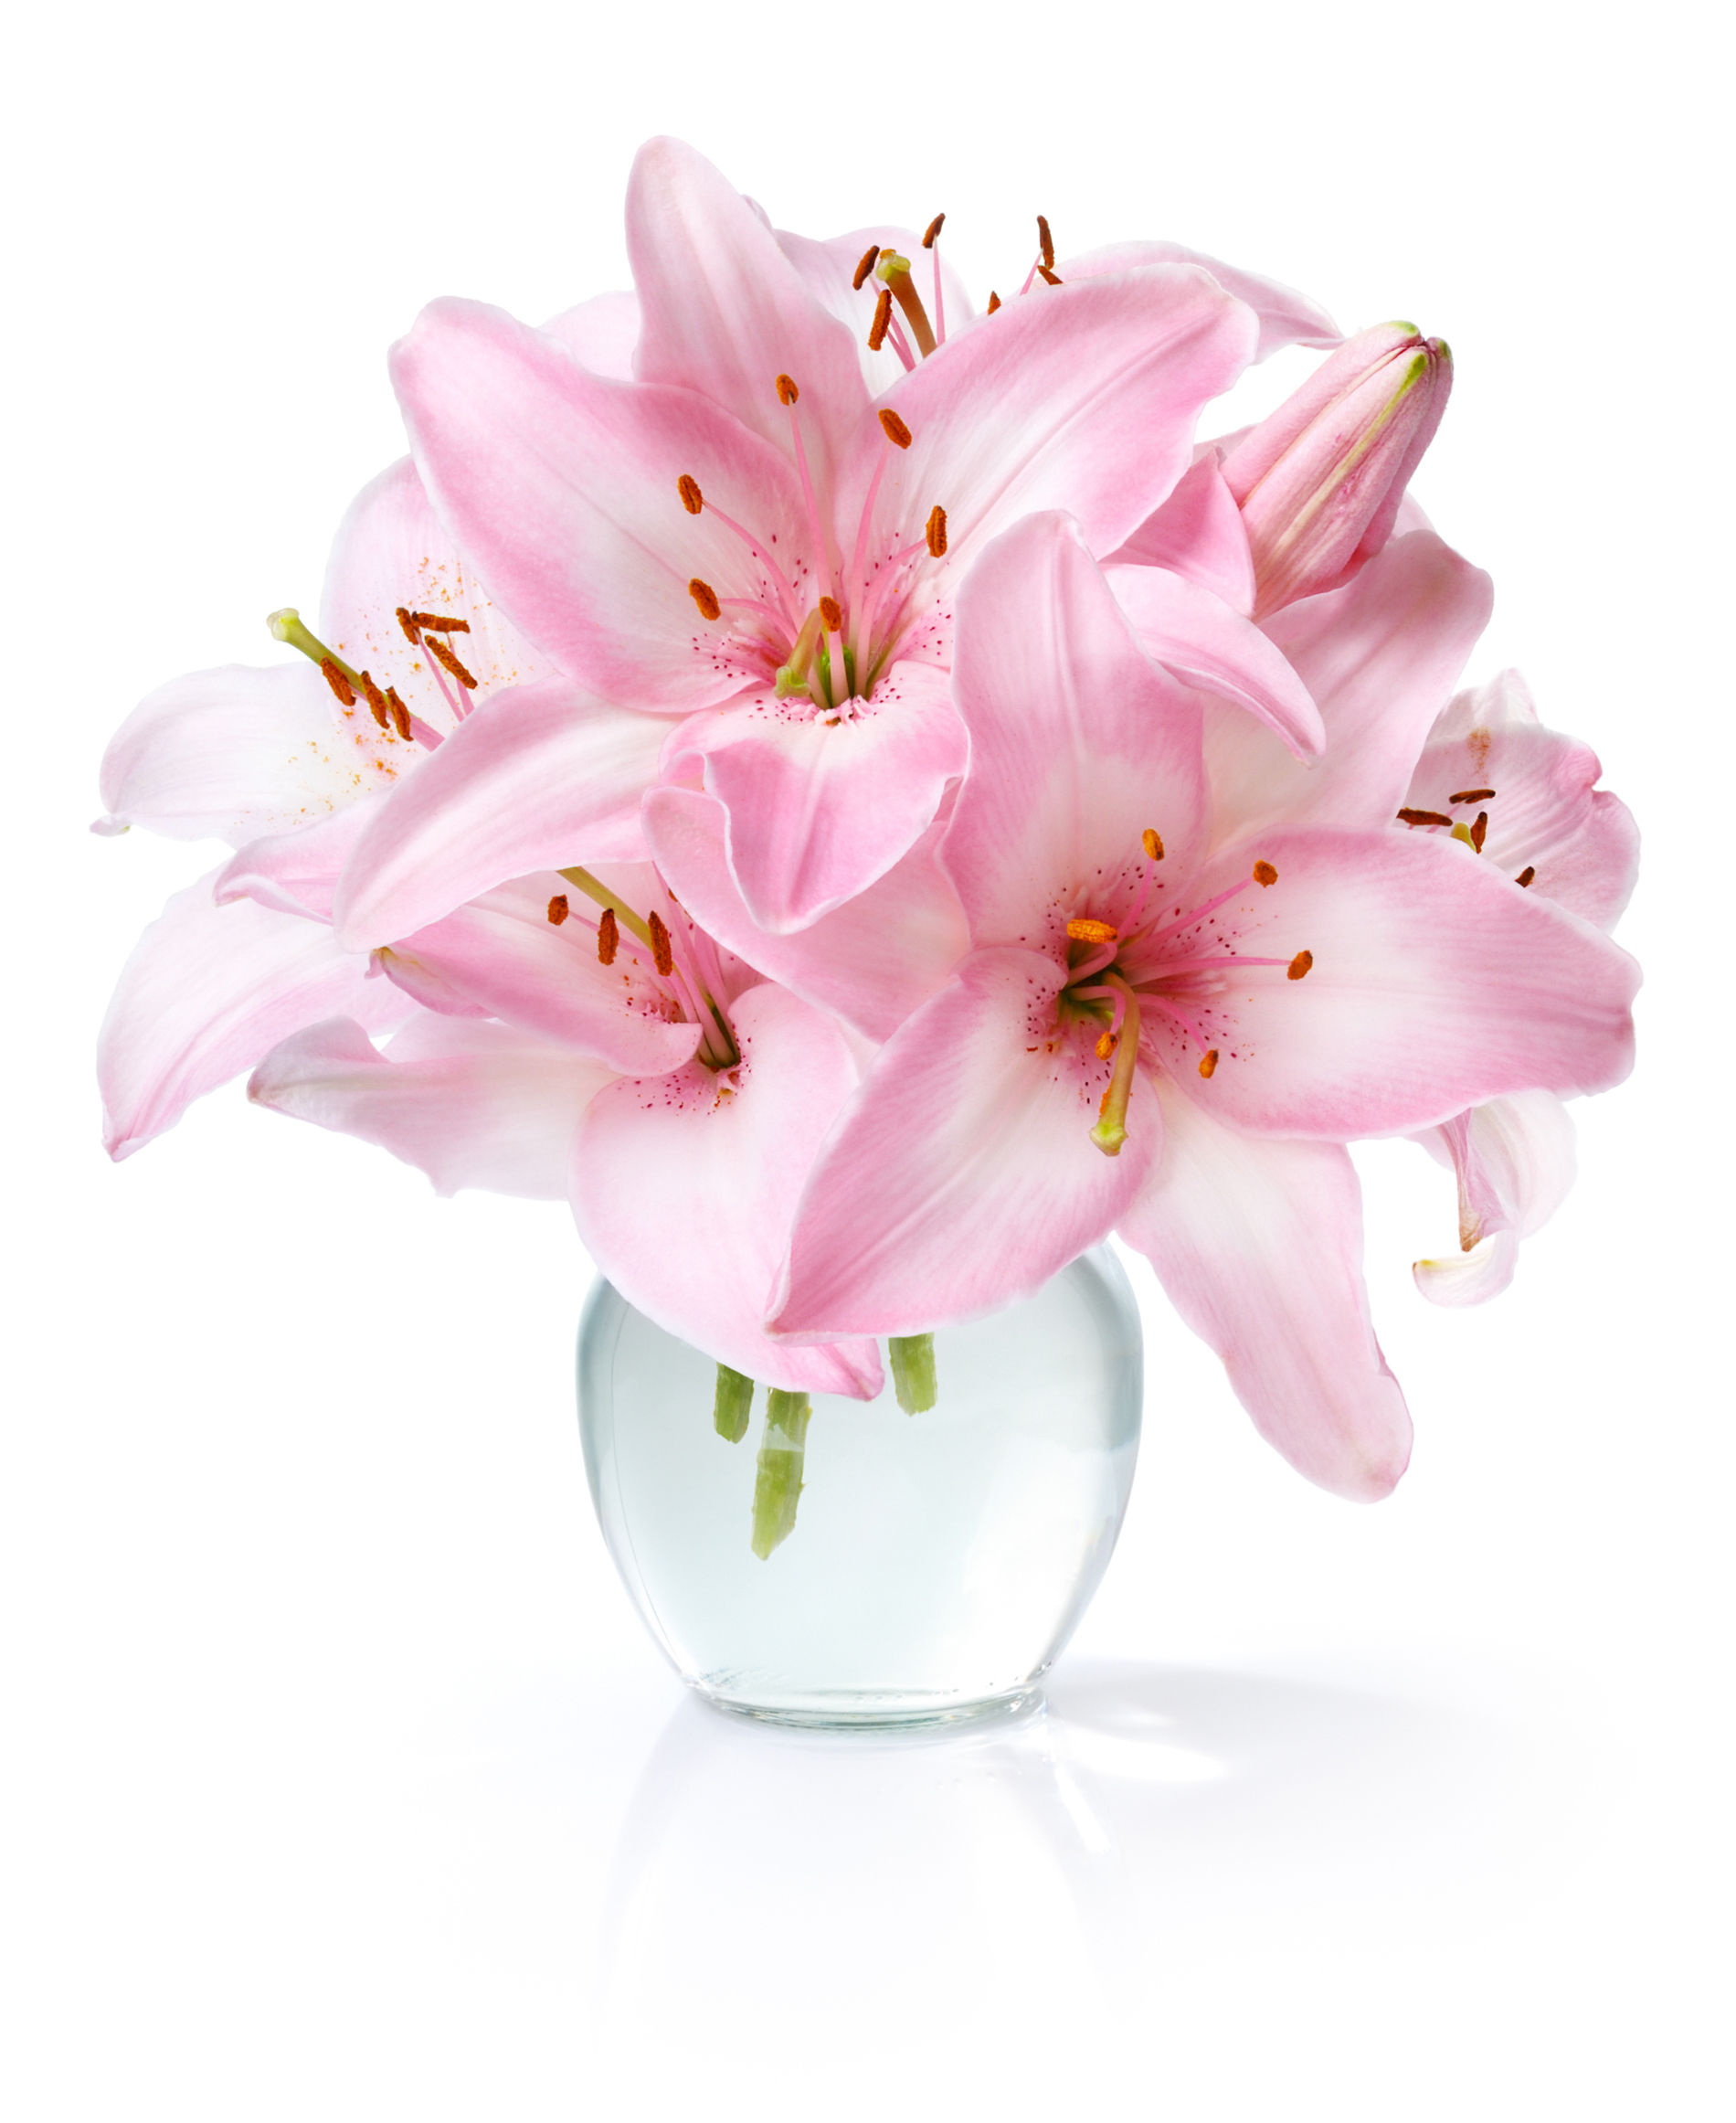 In A Vase Of Pink Lilies 52838 Flowers Photo Flowers